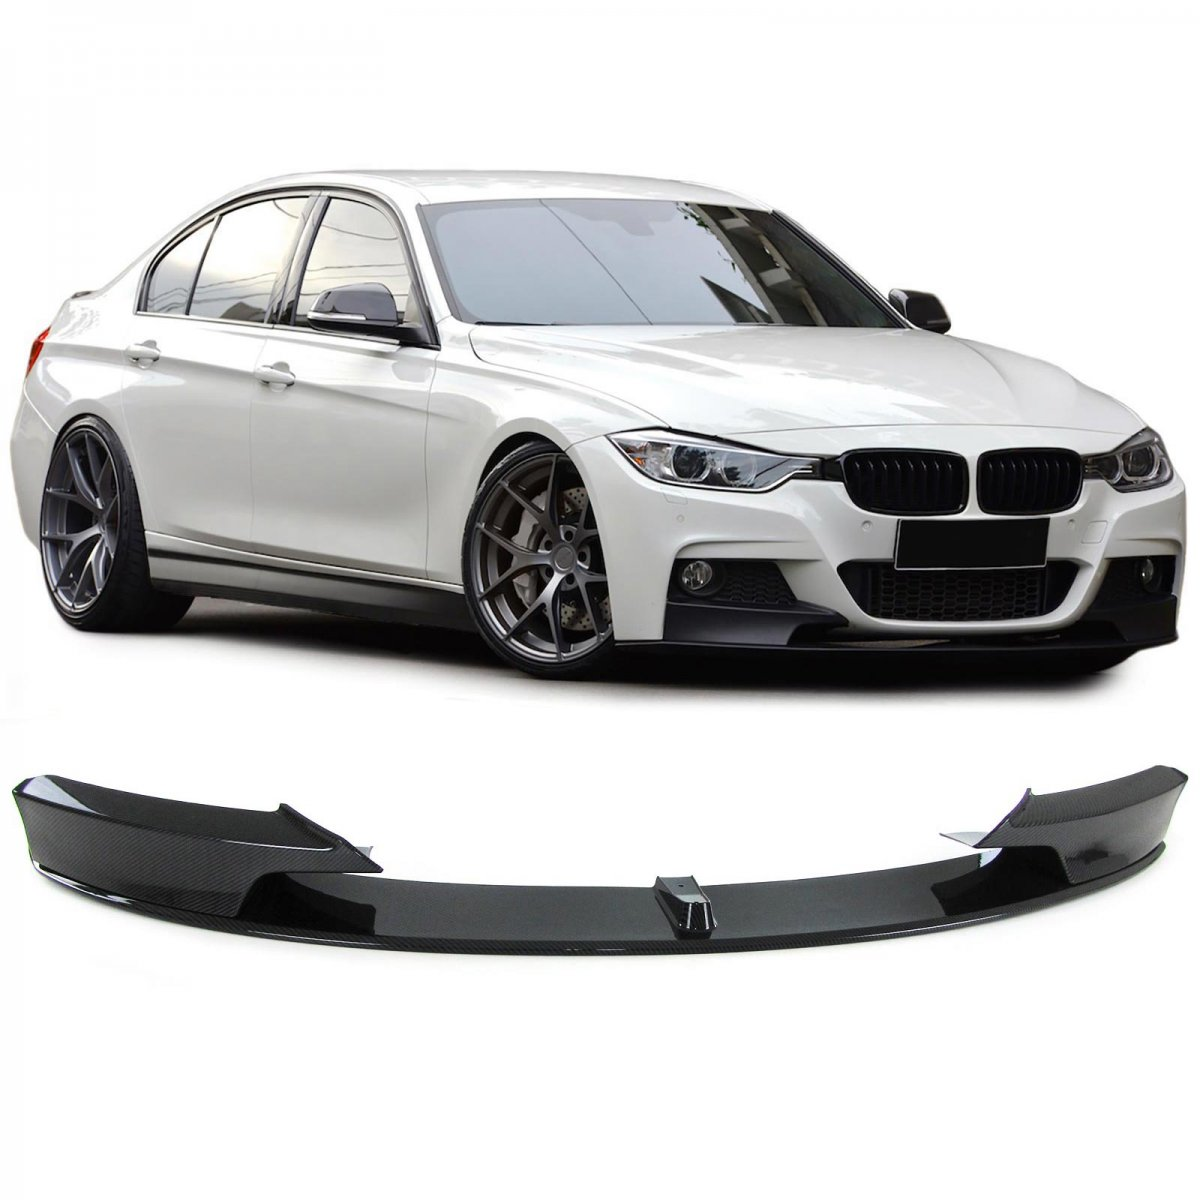 bmw f30 f31 front lip m performance body kit. Black Bedroom Furniture Sets. Home Design Ideas